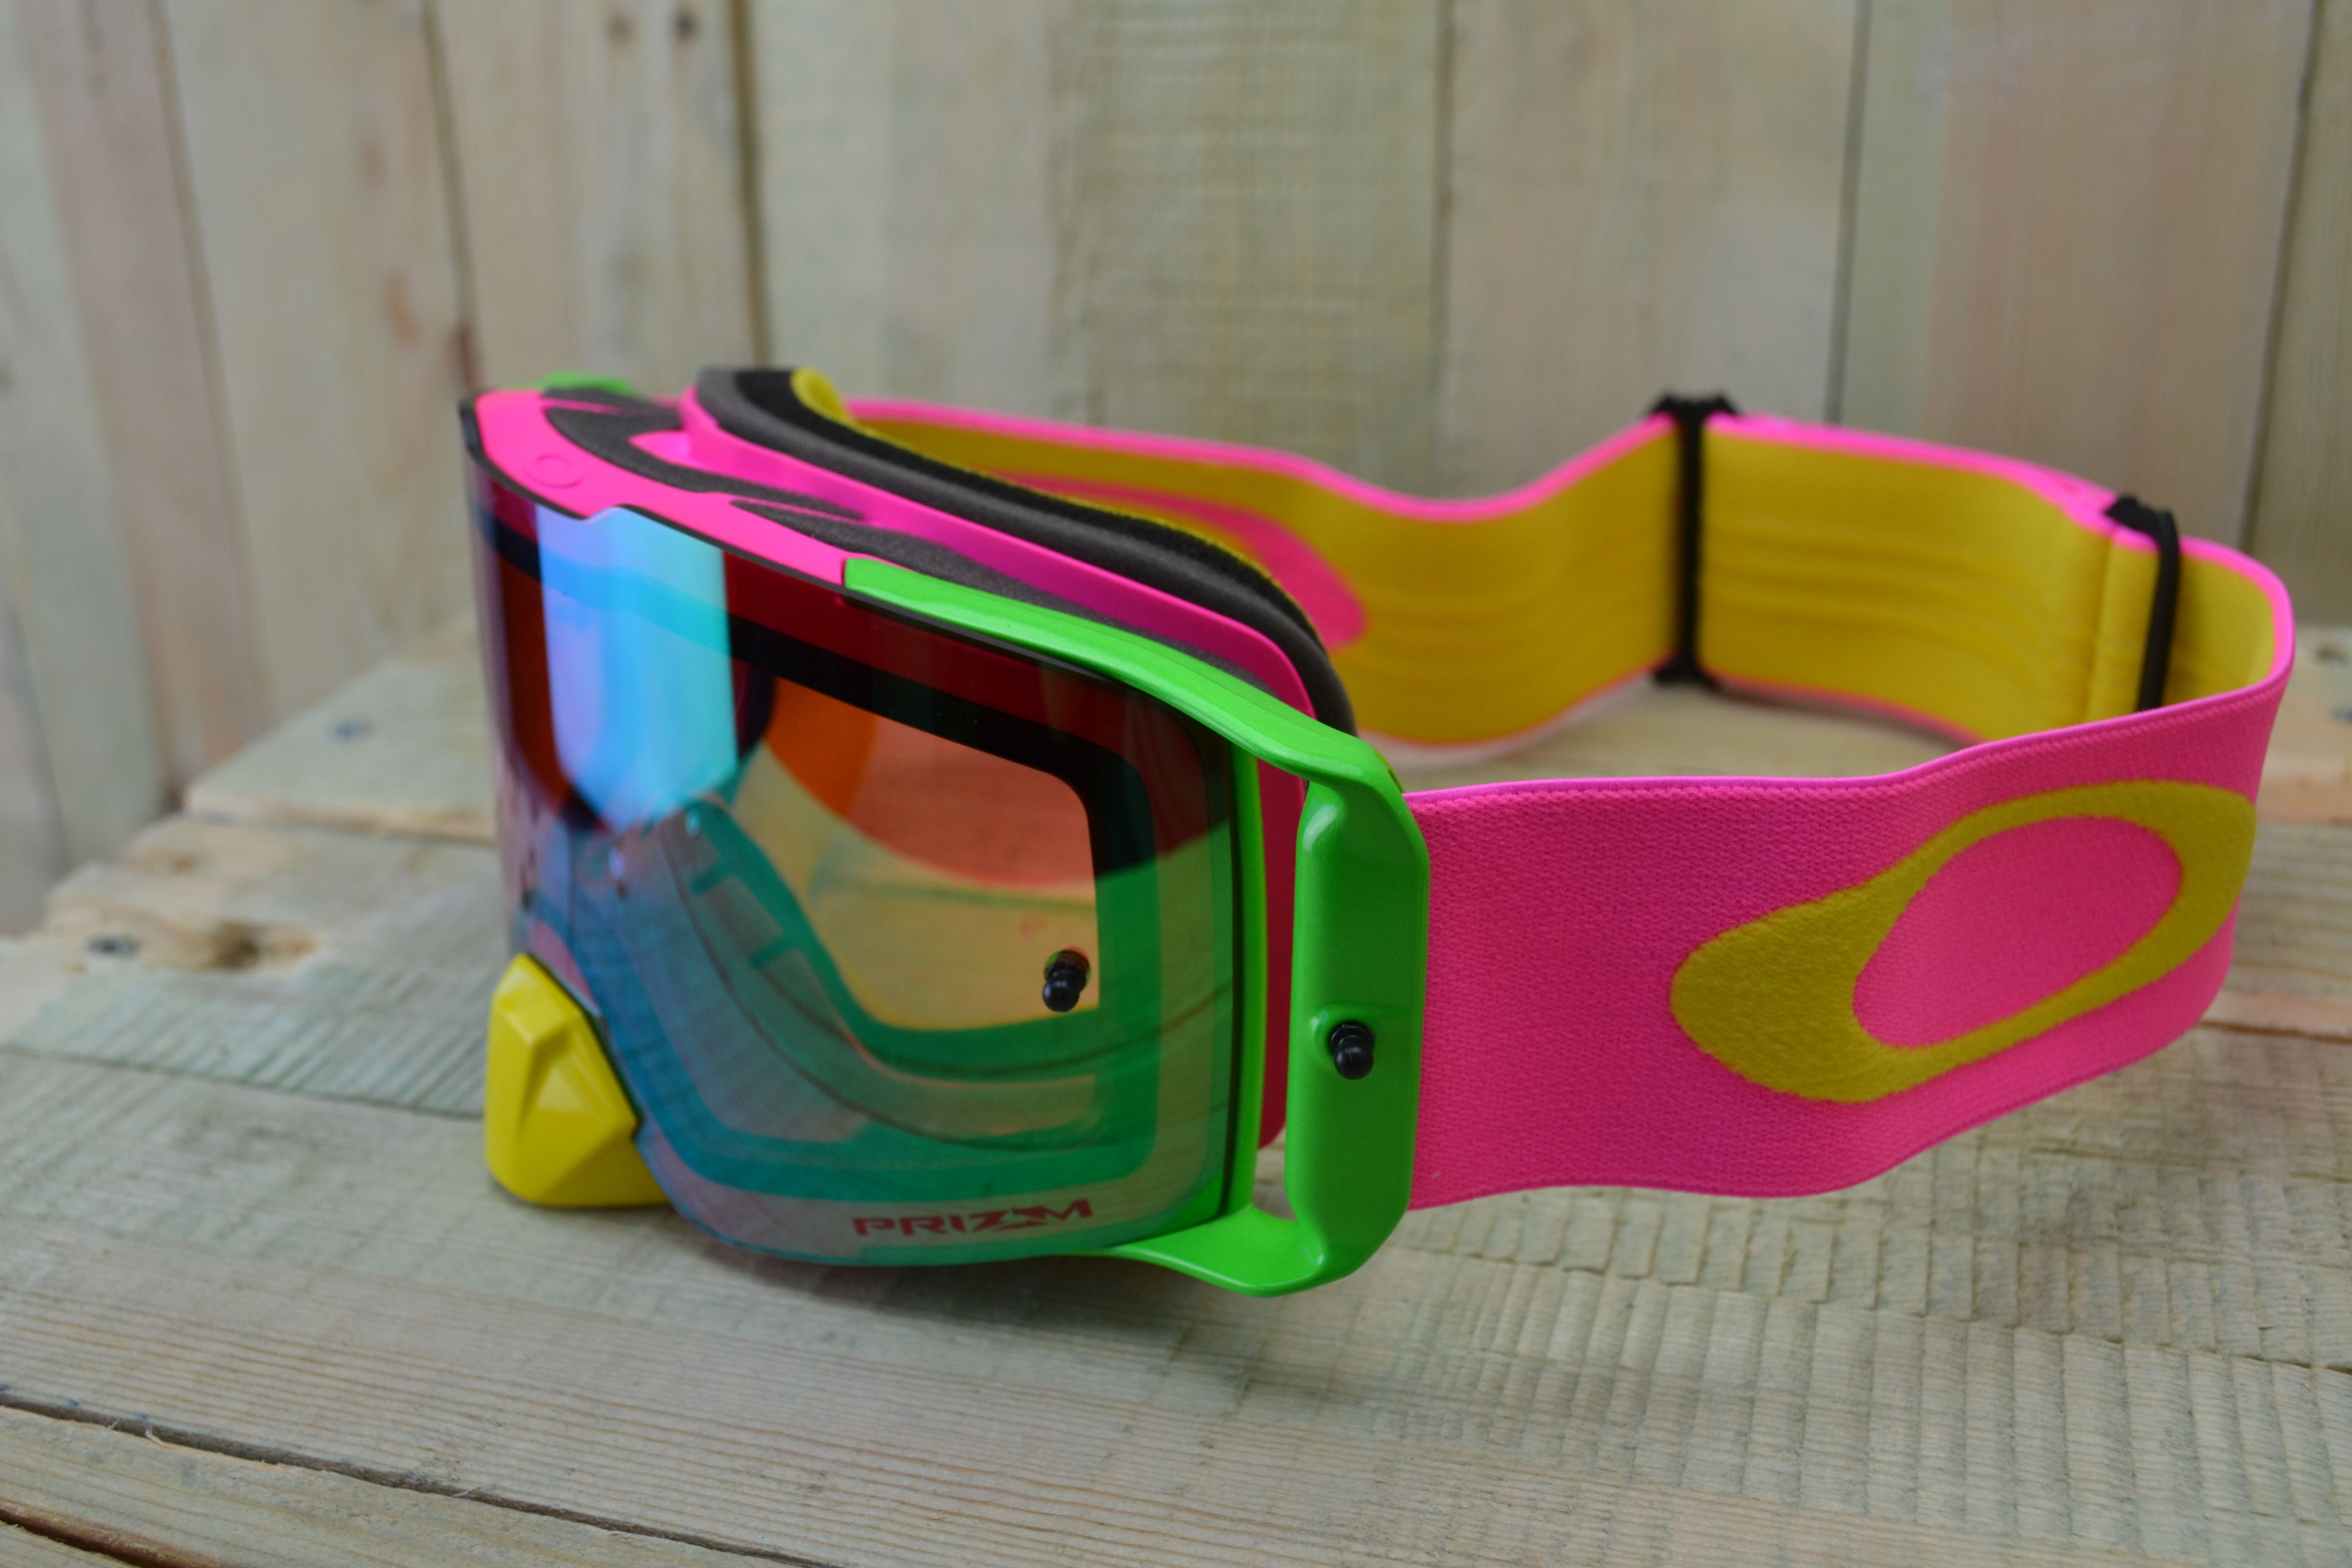 c6fad80fc1b Oakley has released the all-new Front Line MX goggle as the latest addition  to their high impact line of motocross goggles with a list of high-end  features ...